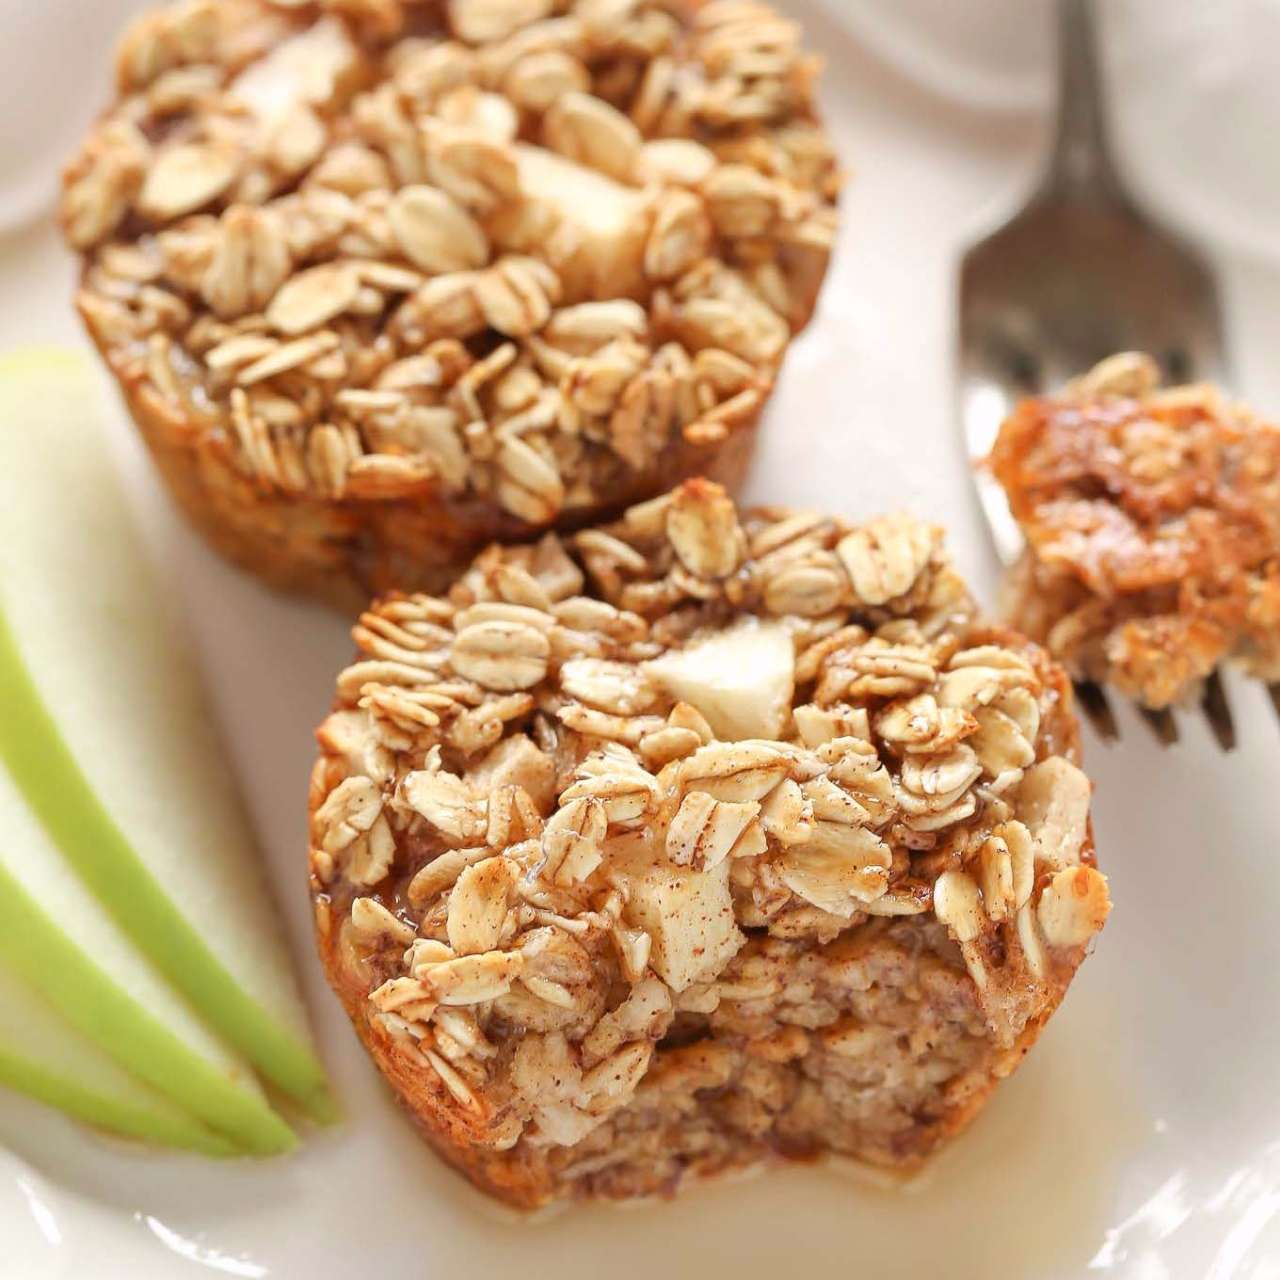 Apple-Cinnamon-Baked-Oatmeal-Cups-2-copy